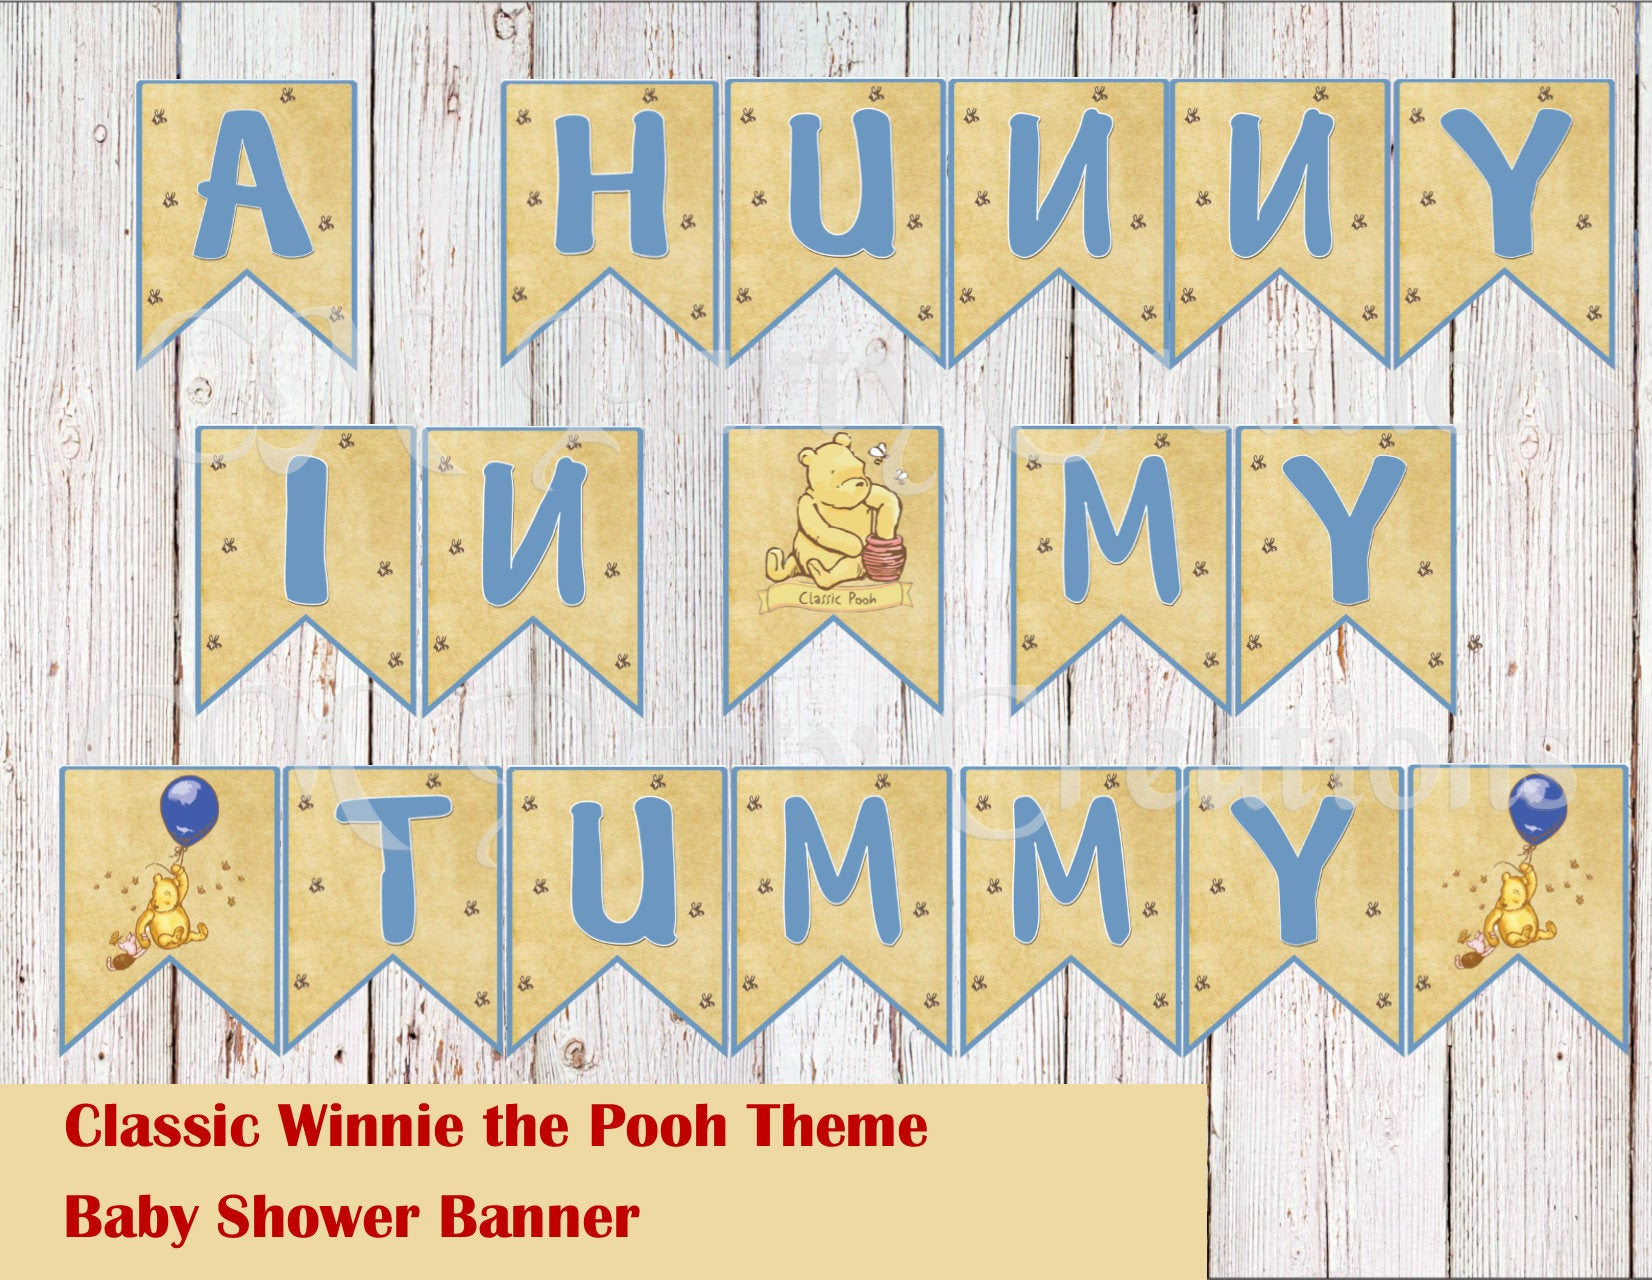 Winnie the Pooh Theme Party Personalized Banner Winnie the Pooh Birthday Banner Winnie the Pooh Baby Shower Banner Lavender